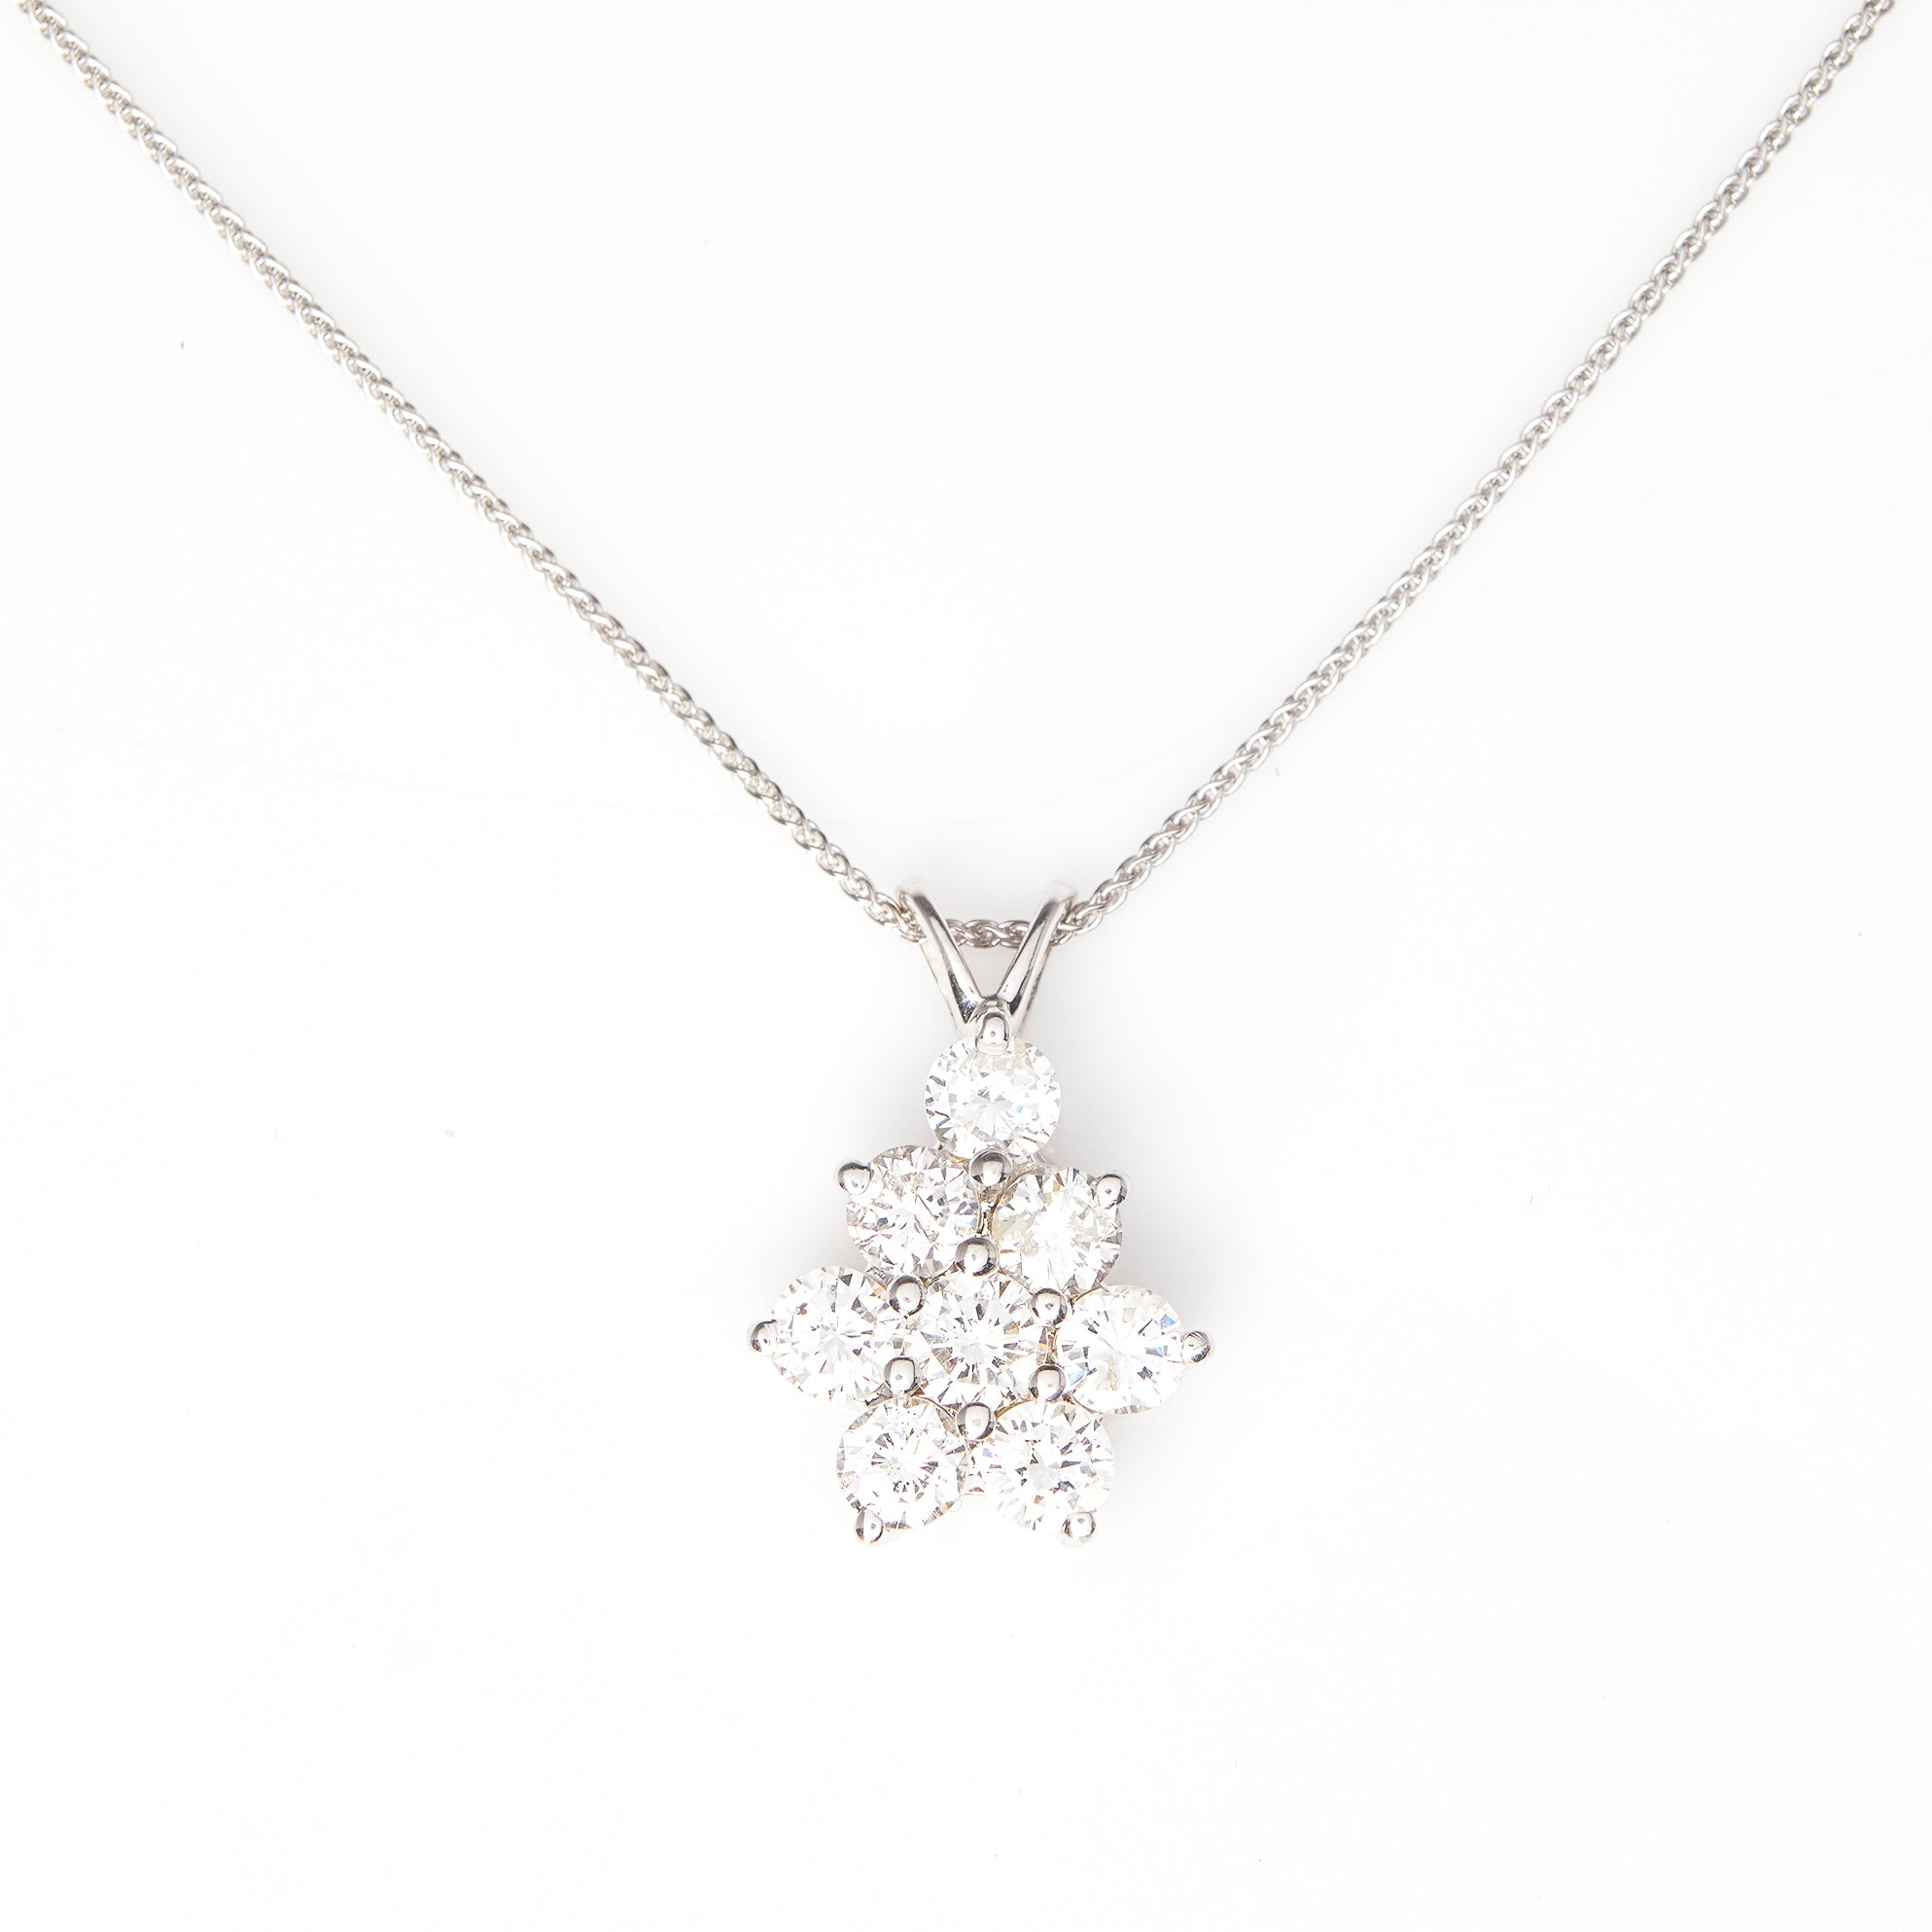 Diamond Cluster in White Gold Necklace - Sindur Style